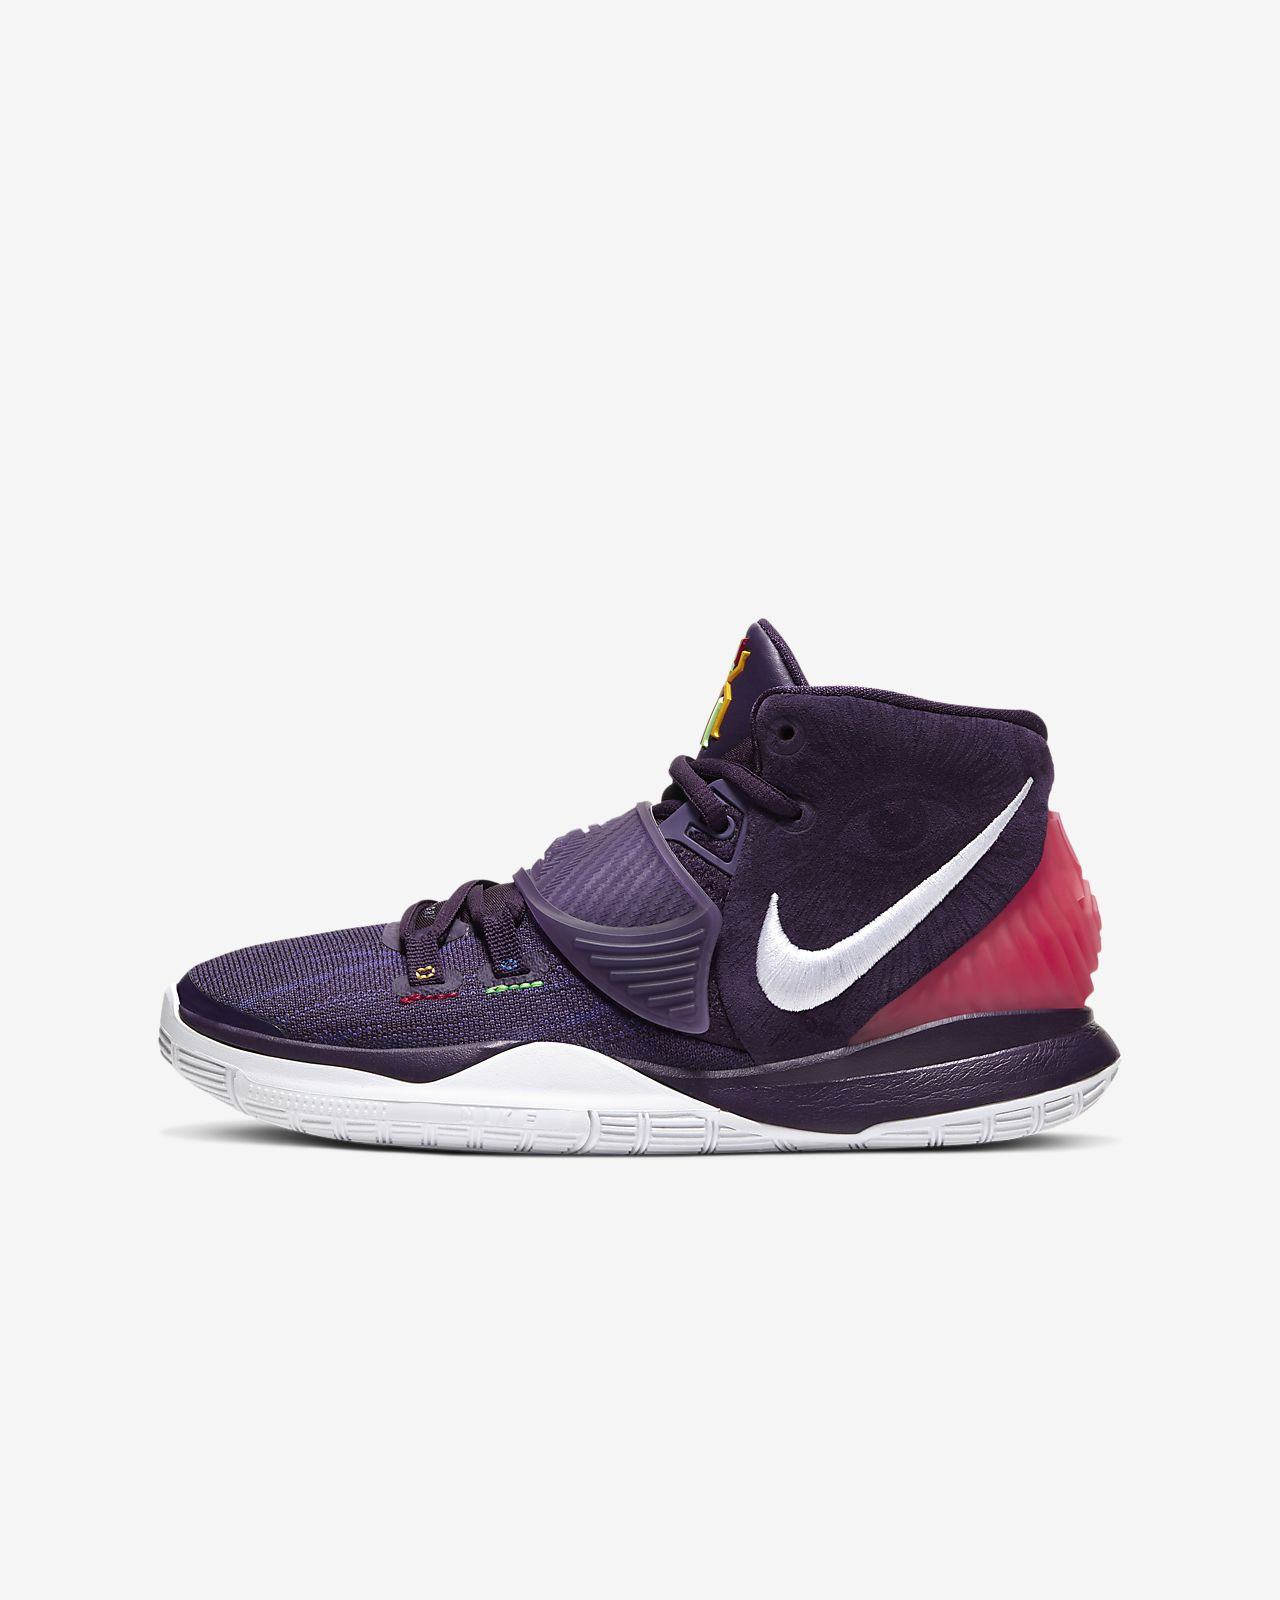 Kyrie 6 Big Kids' Basketball Shoe